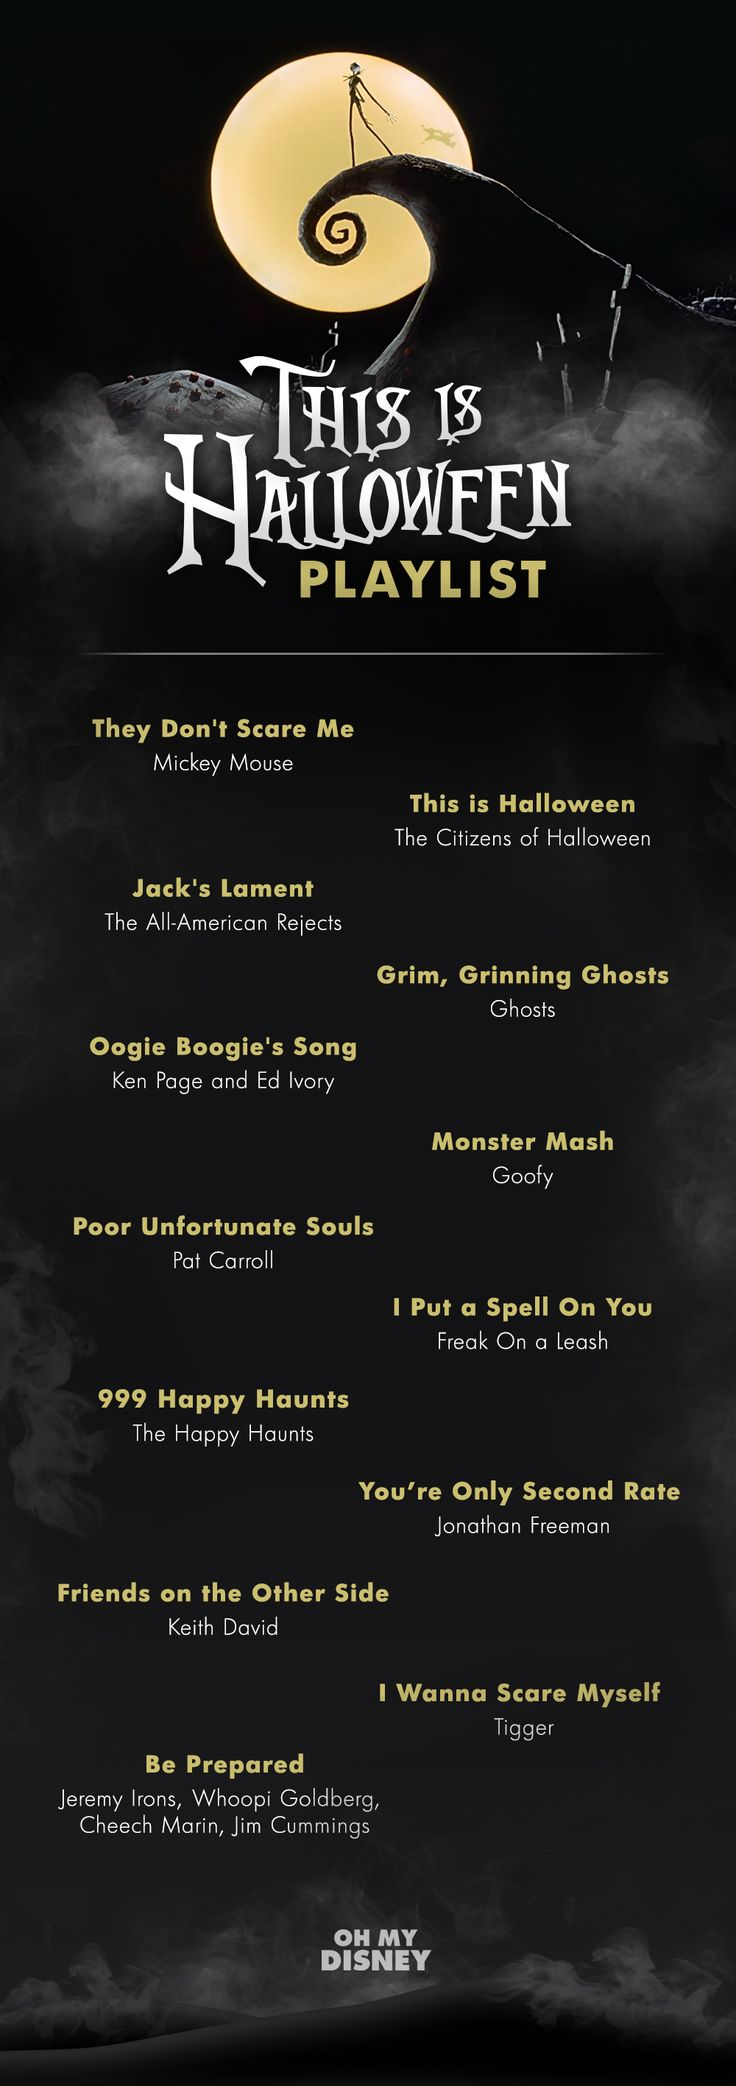 This is Halloween: A Super Spooky Playlist Perfect for All Hallow's Eve | Oh My Disney | Music